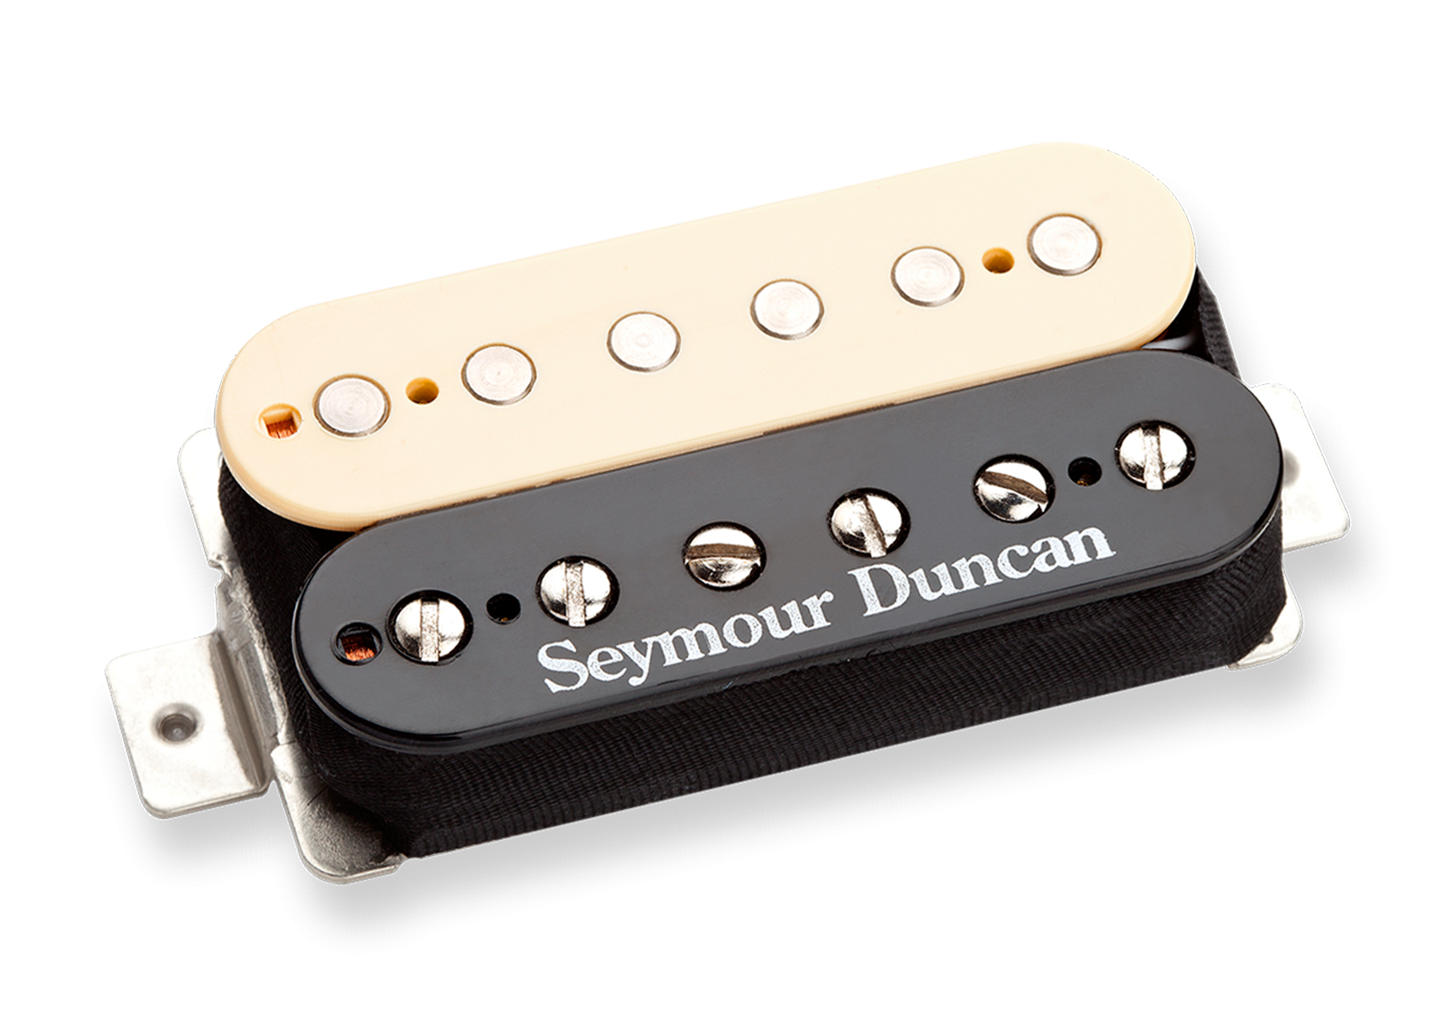 Seymour Duncan Whole Lotta Humbucker - SH-18B Bridge Reverse Zebra